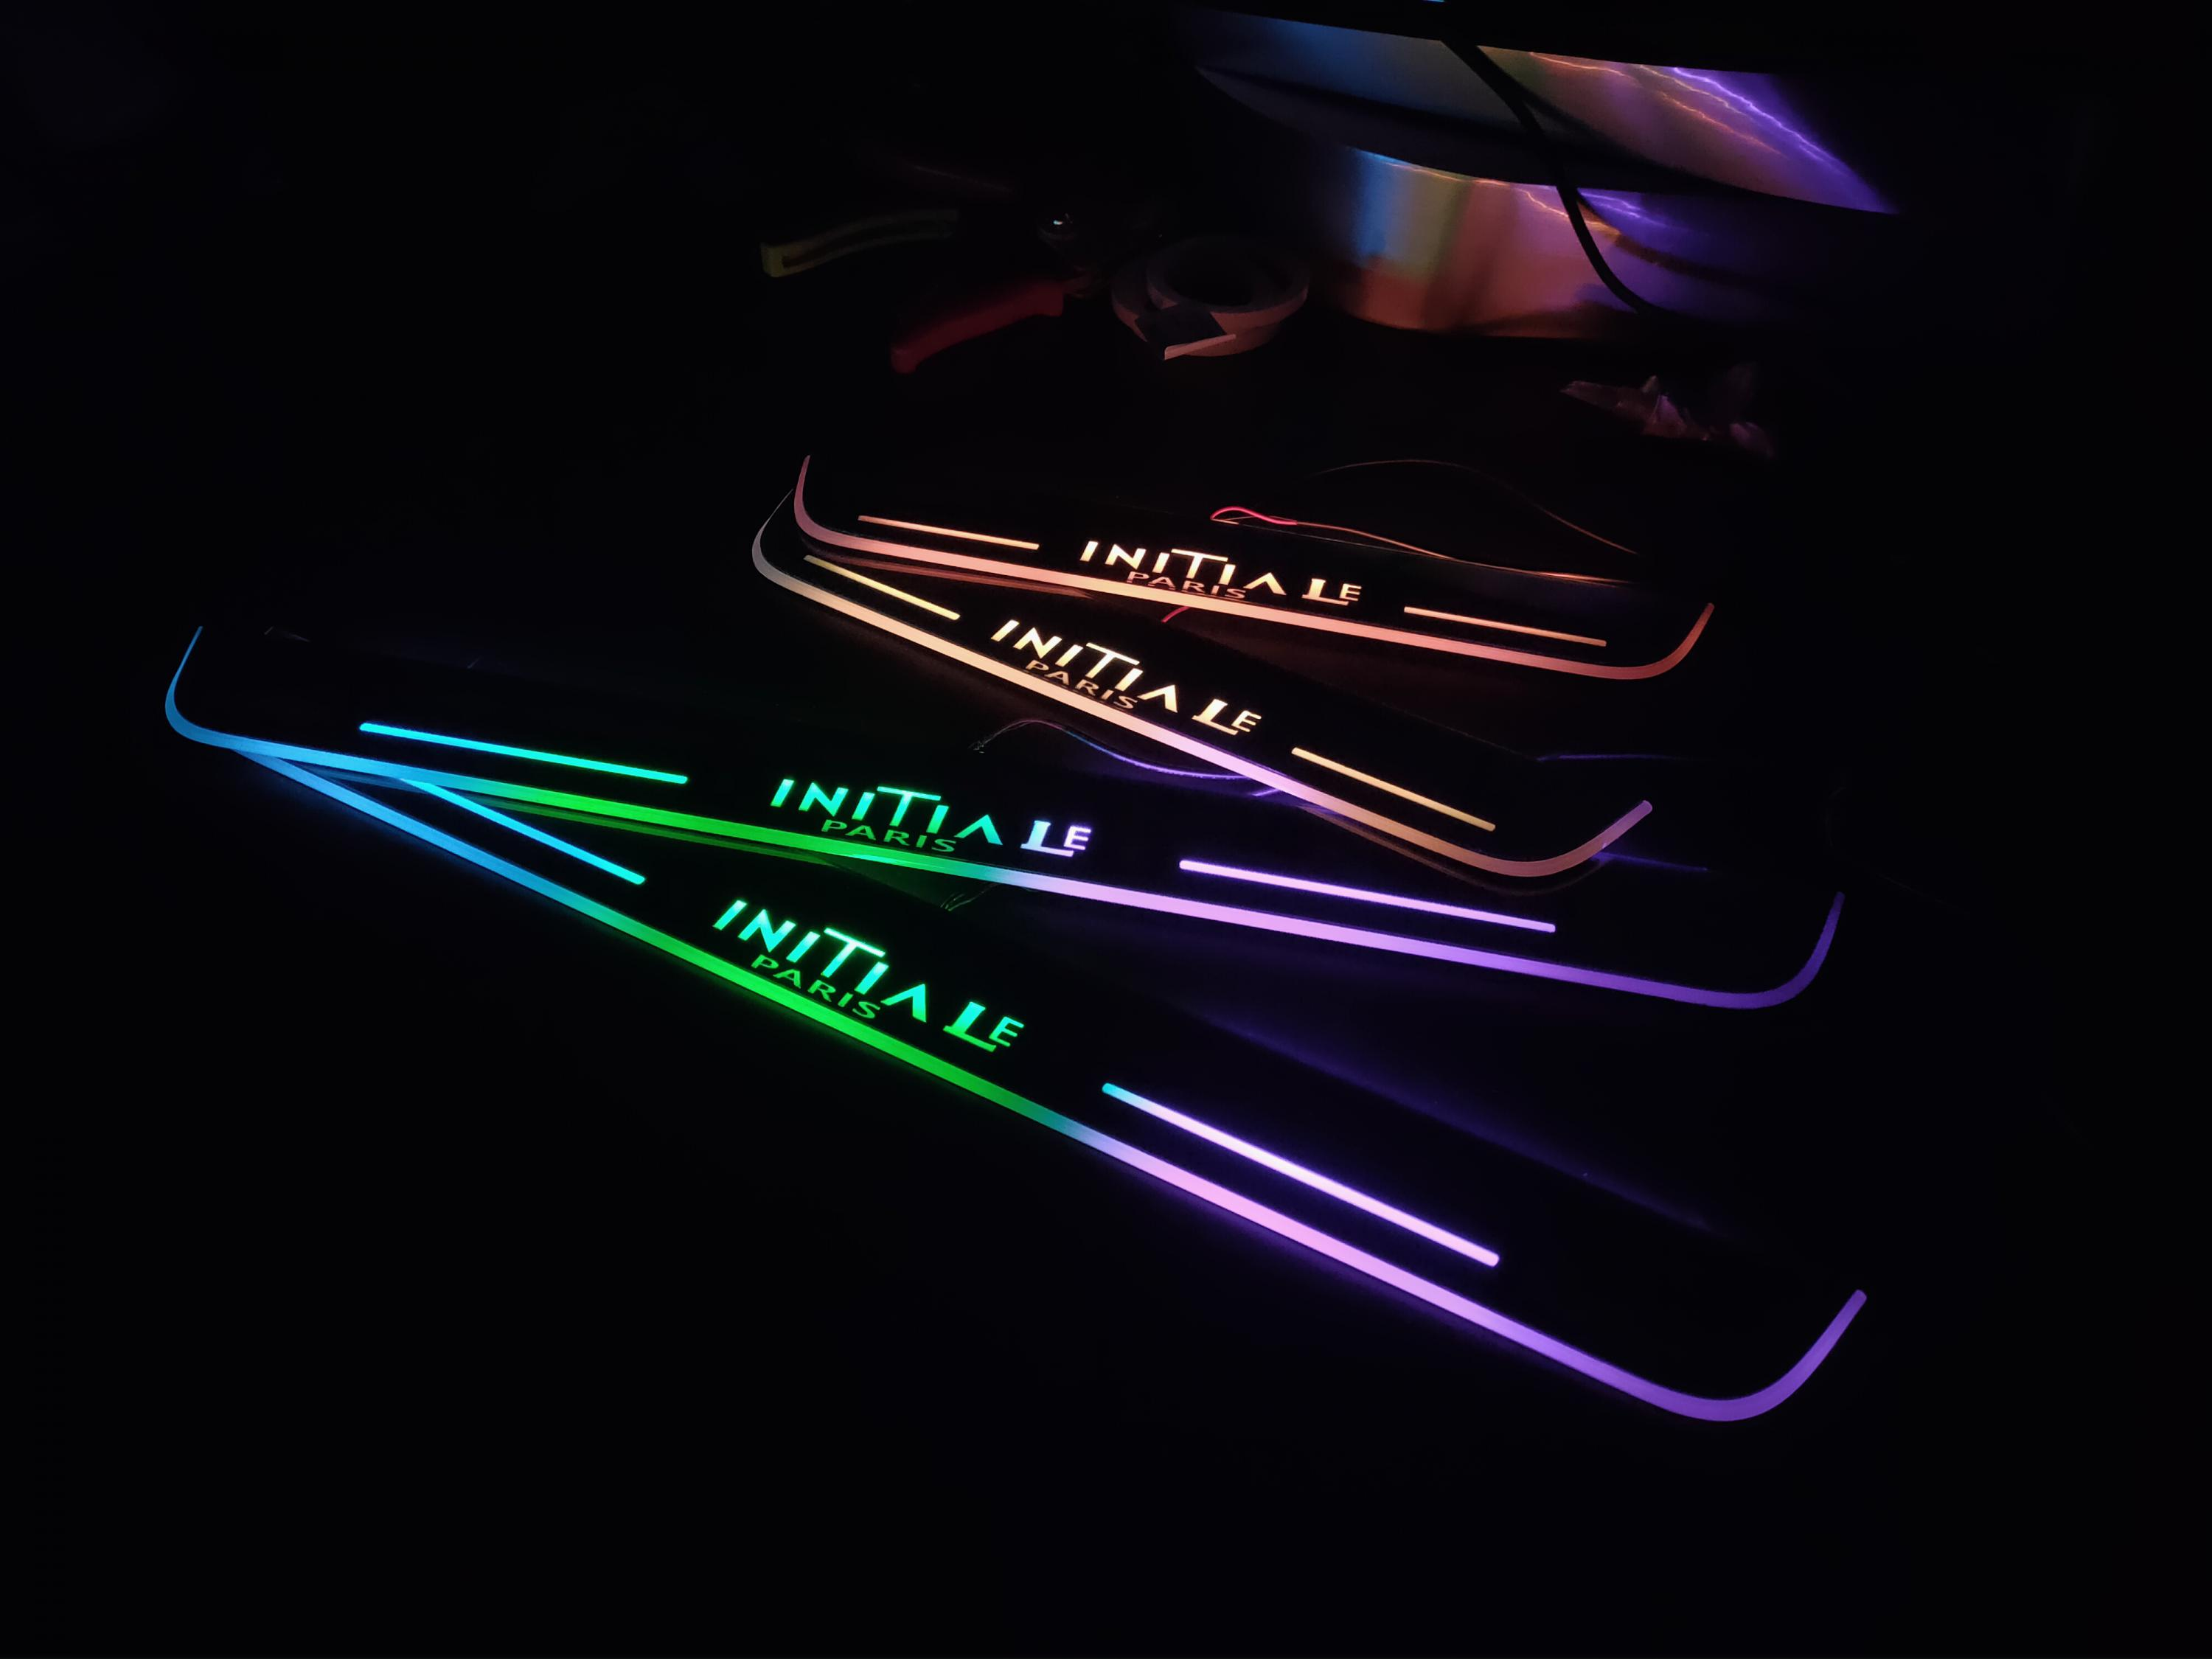 Acrylic Door Sill Plate Strip With Led Decorative Welcome Light Moving Door Scuff For Renault Talisman Initiale Paris